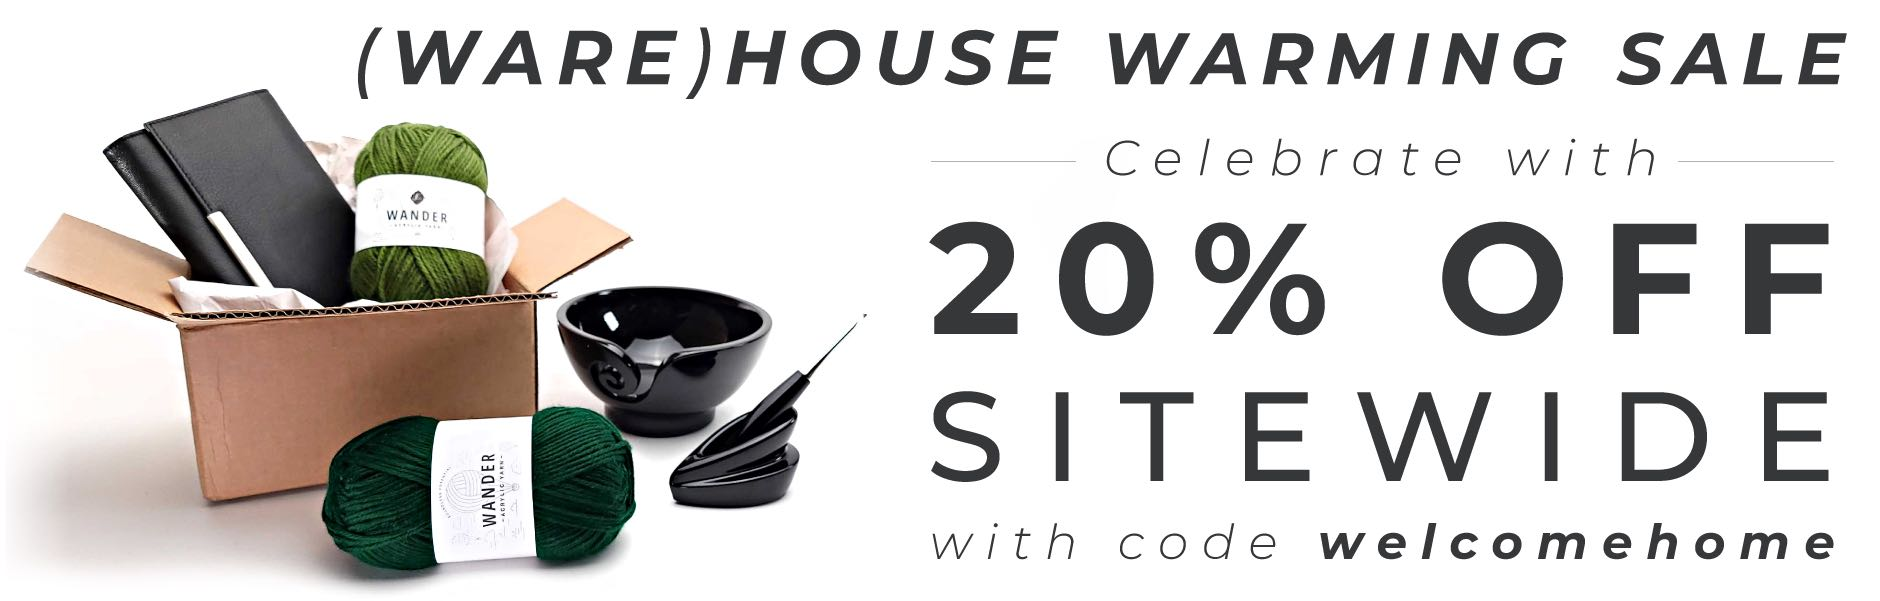 Warehouse Warming Sale - 20% off sitewide with code welcomehome